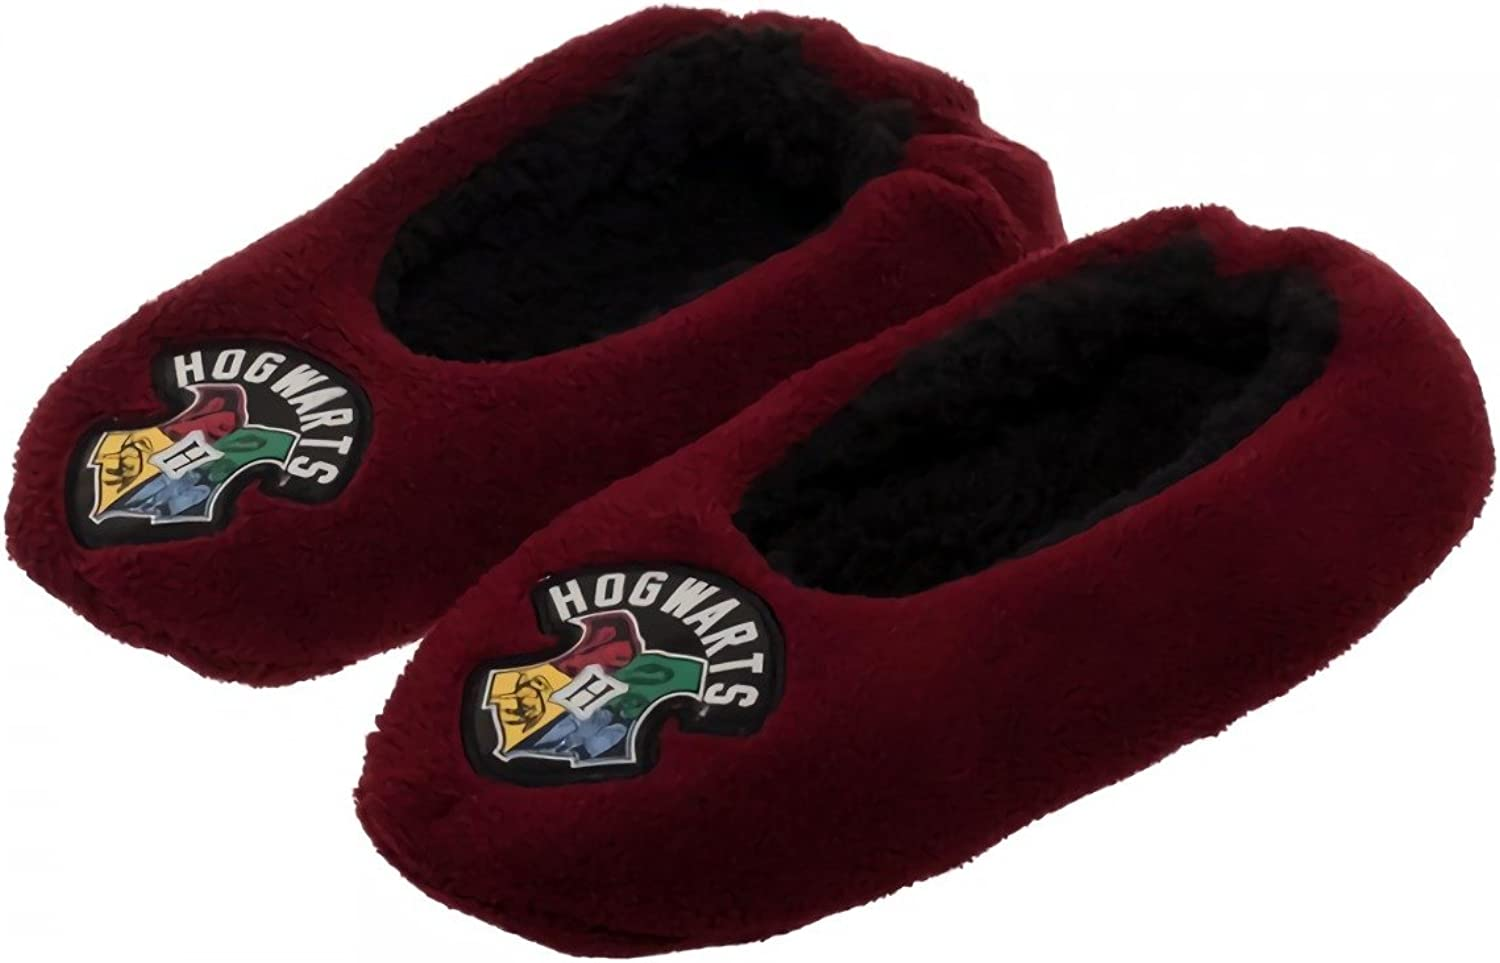 Harry Potter Hogwarts Slippers - 4 Pack -1x5 6, 2x7 8 & 1x9 10